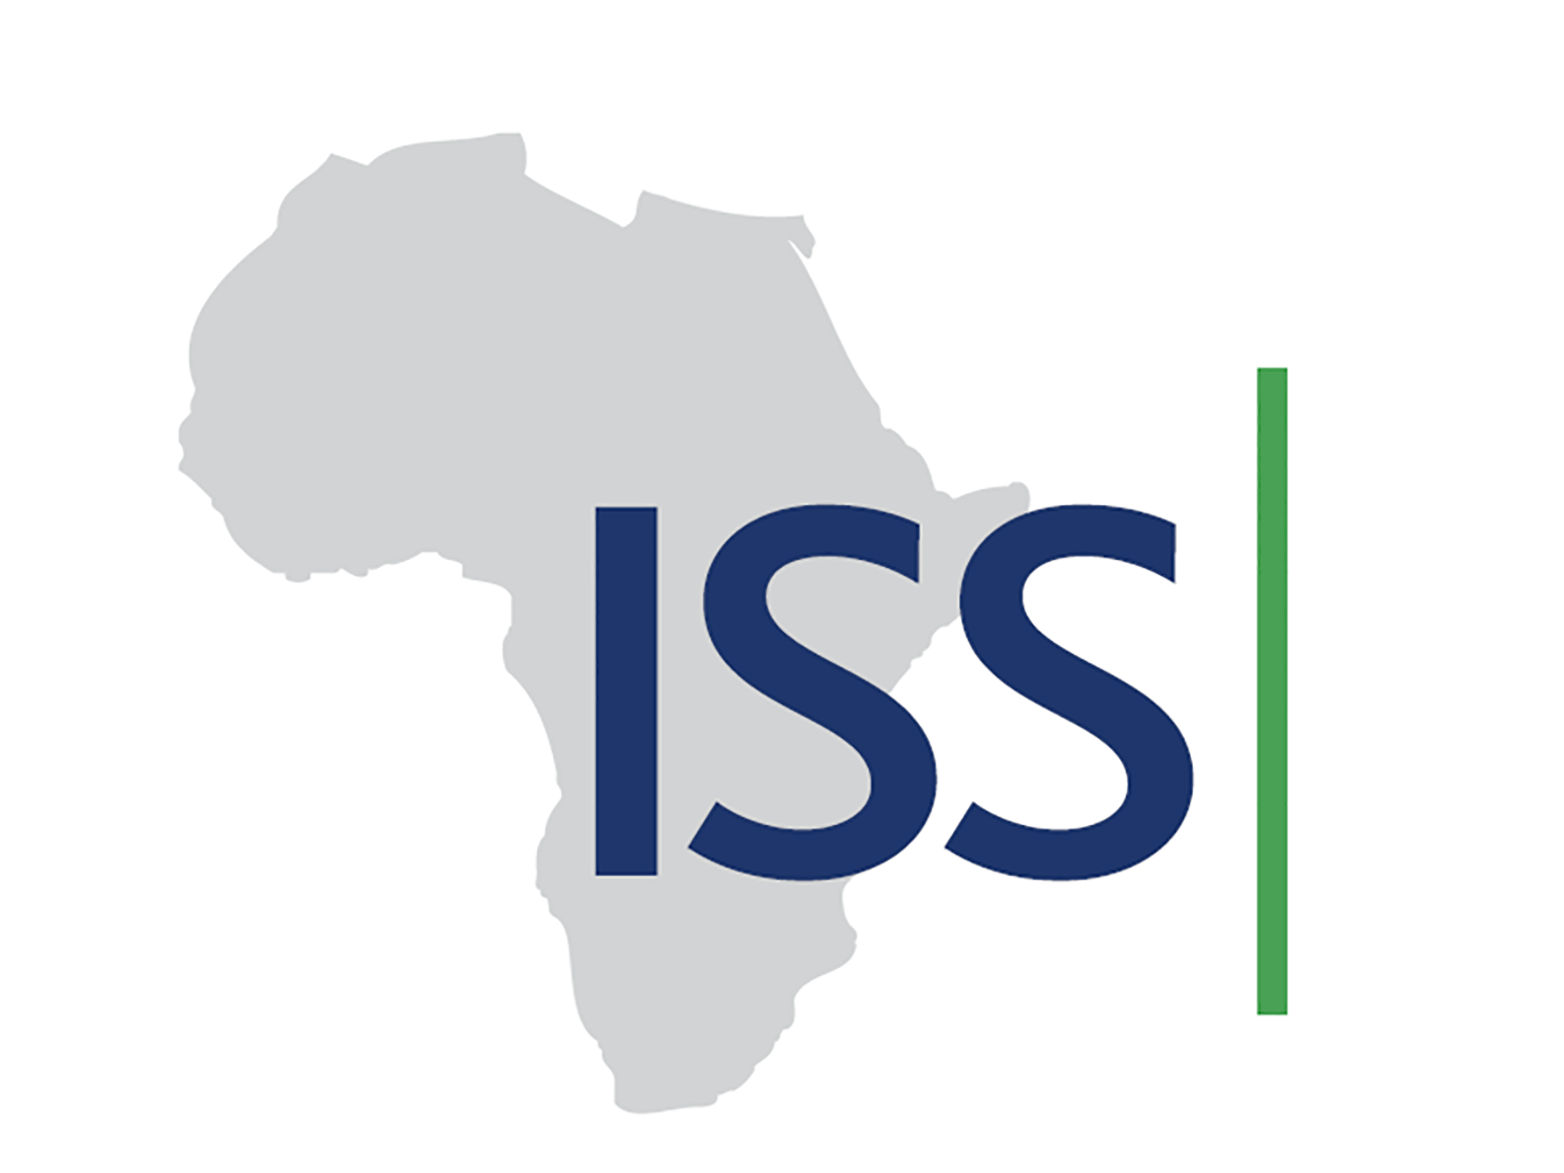 Institute for Security Studies (ISS) - Center for Security